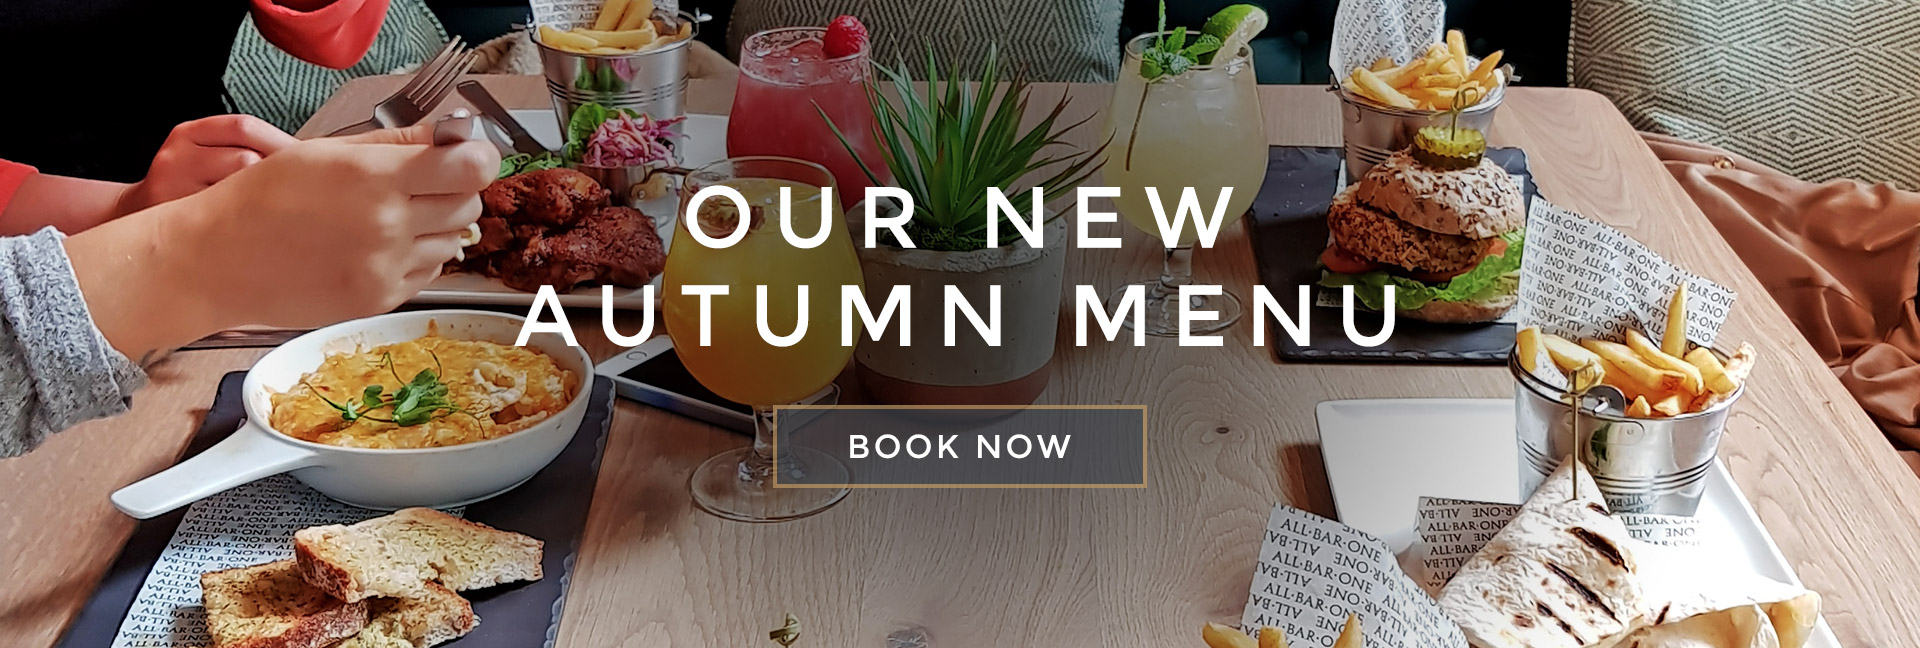 Our new Autumn menu at All Bar One Norwich - Book now